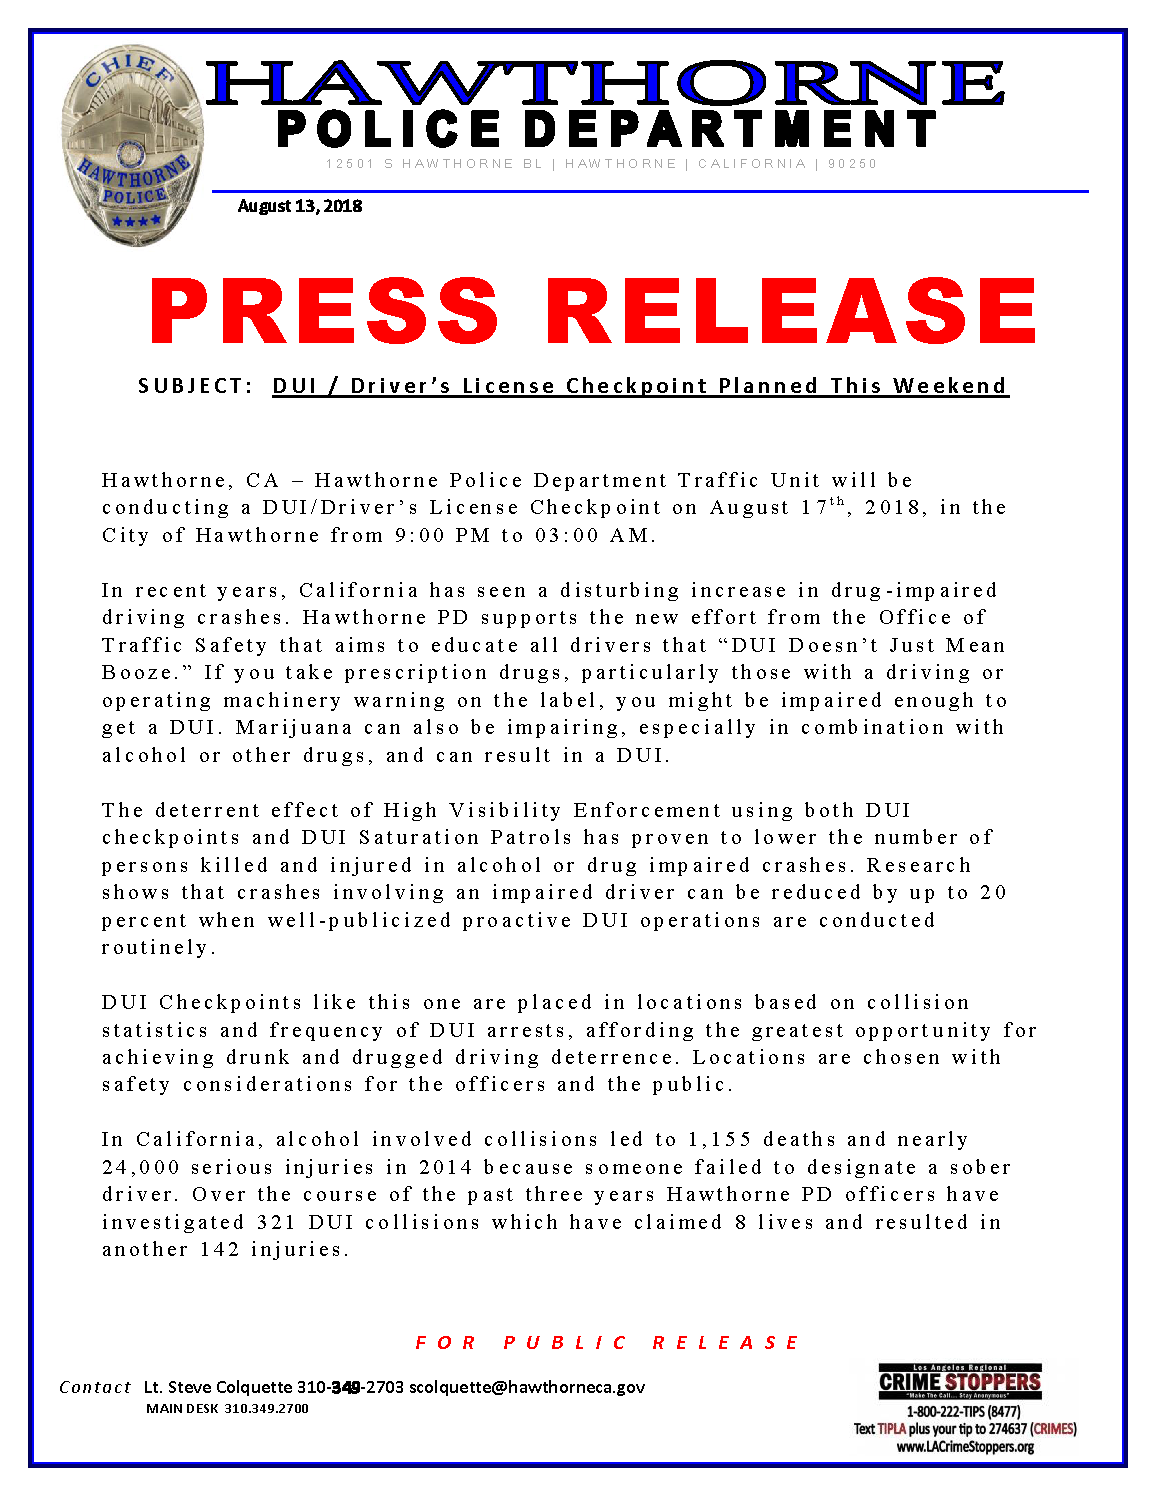 DUI Checkpoint Press Release 08-17-18_Page_1.png